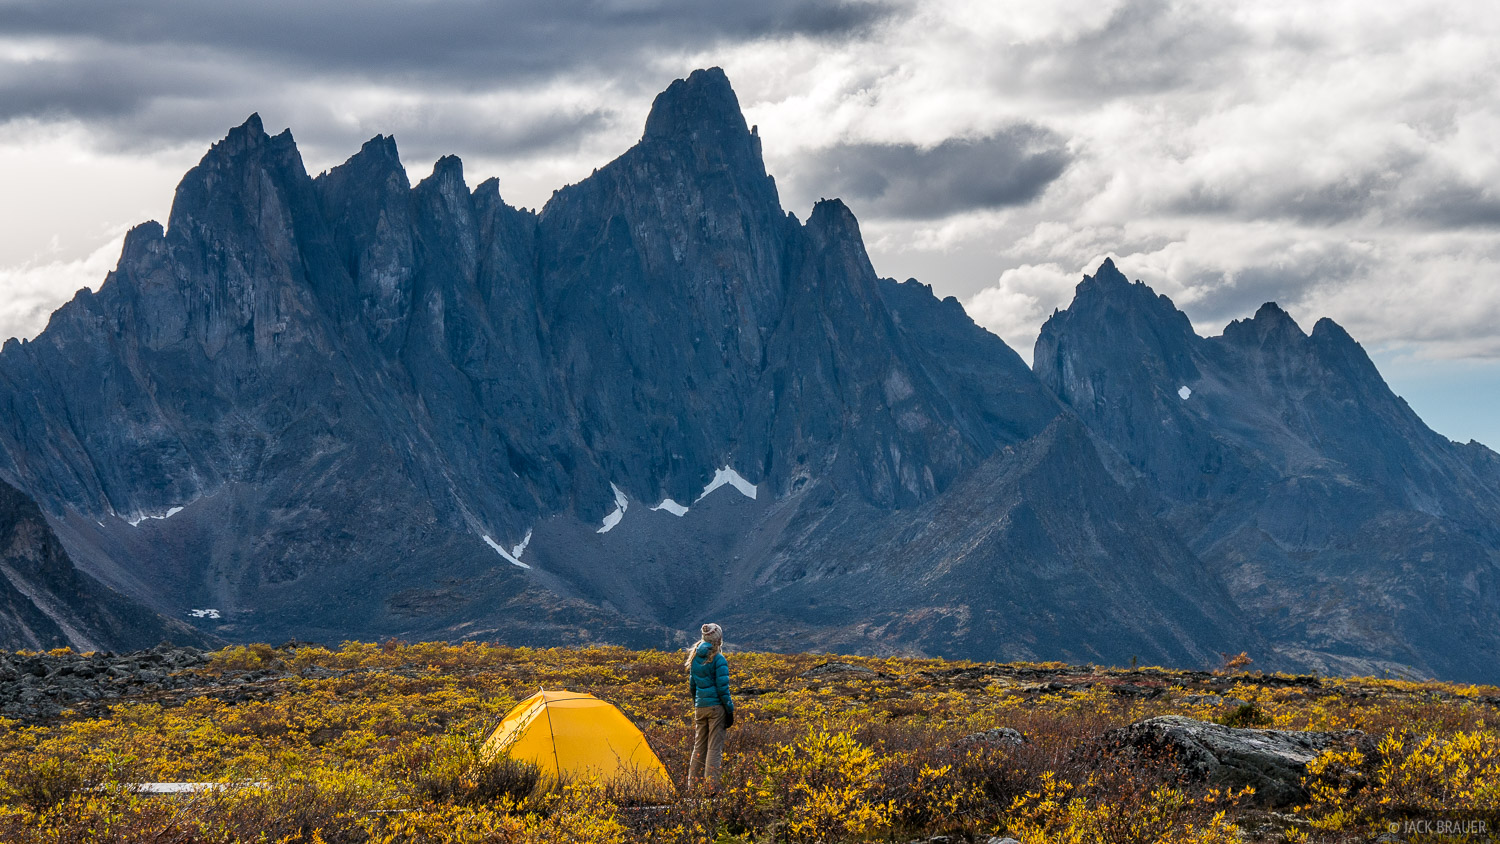 Another view of our tent at Talus Lake, looking towards Tombstone Mountain, the namesake peak of the range.